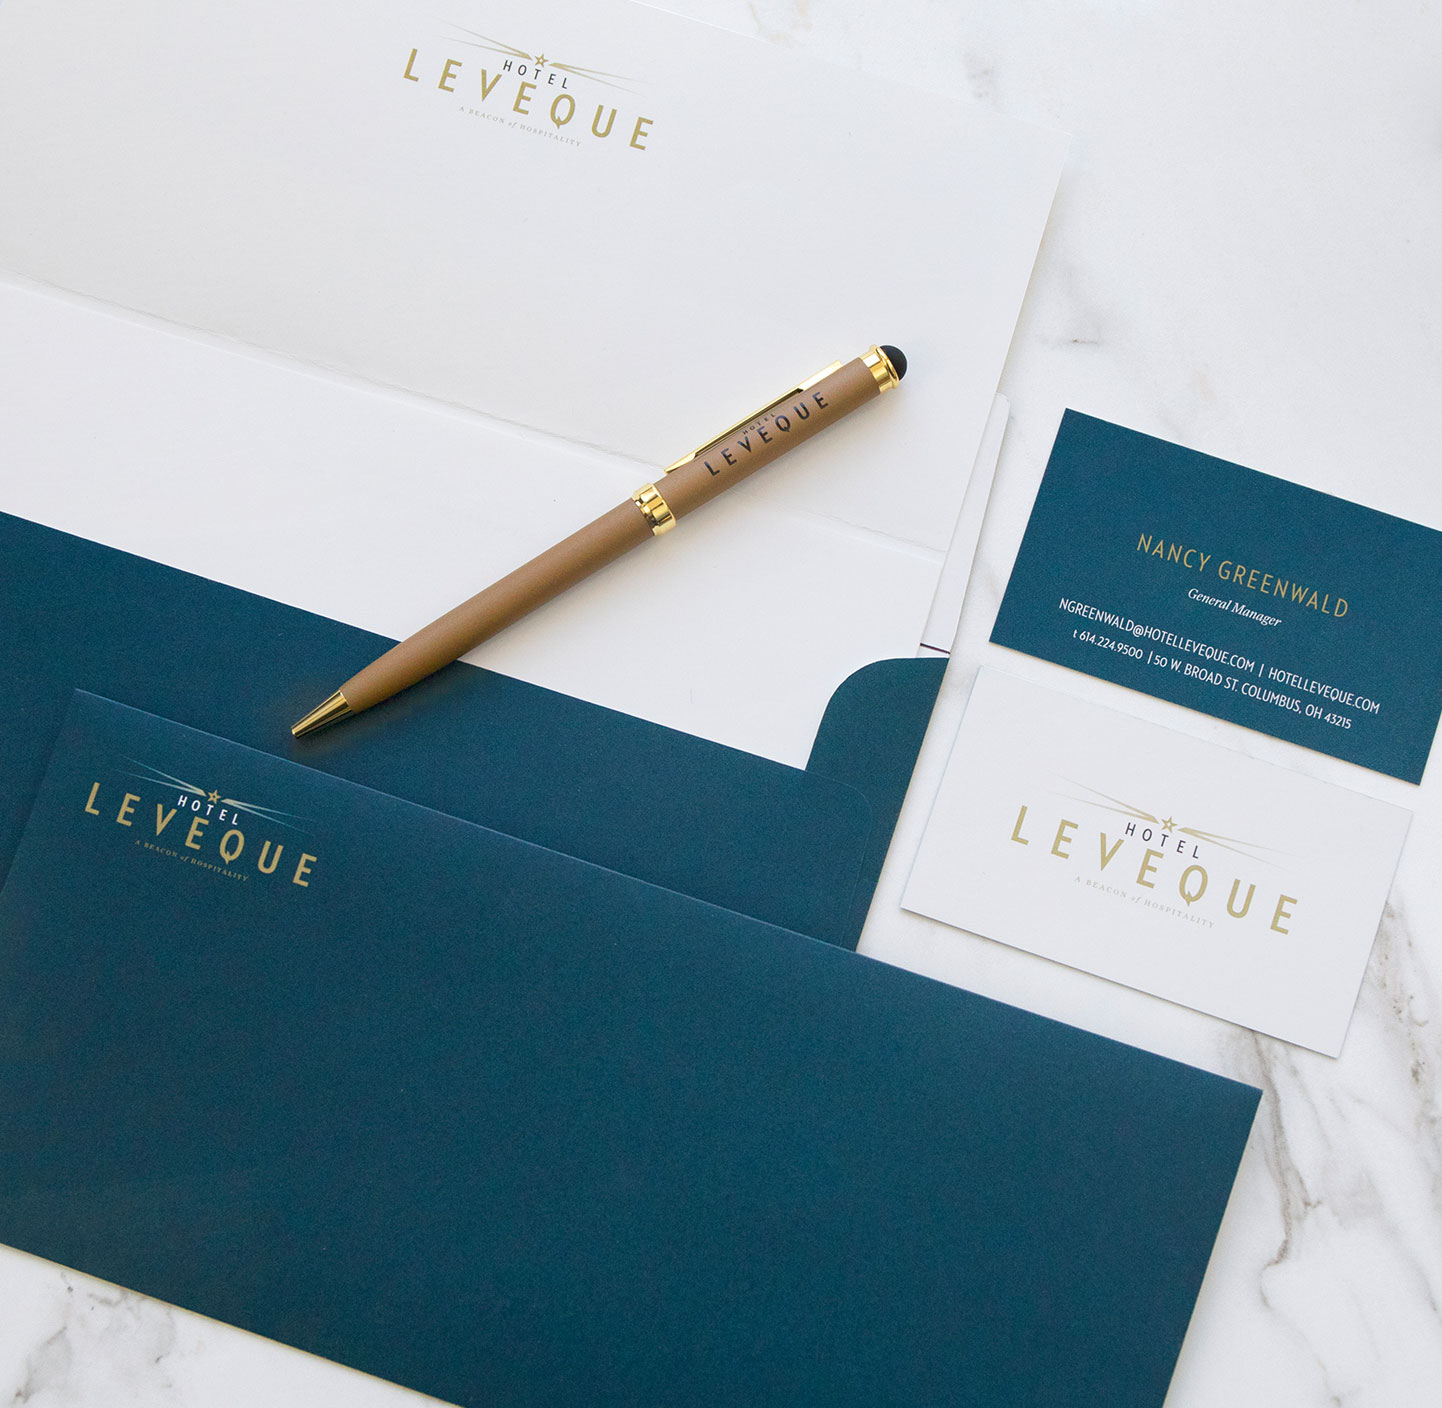 Hotel LeVeque, an Autograph Collection Hotel | The Gettys Group